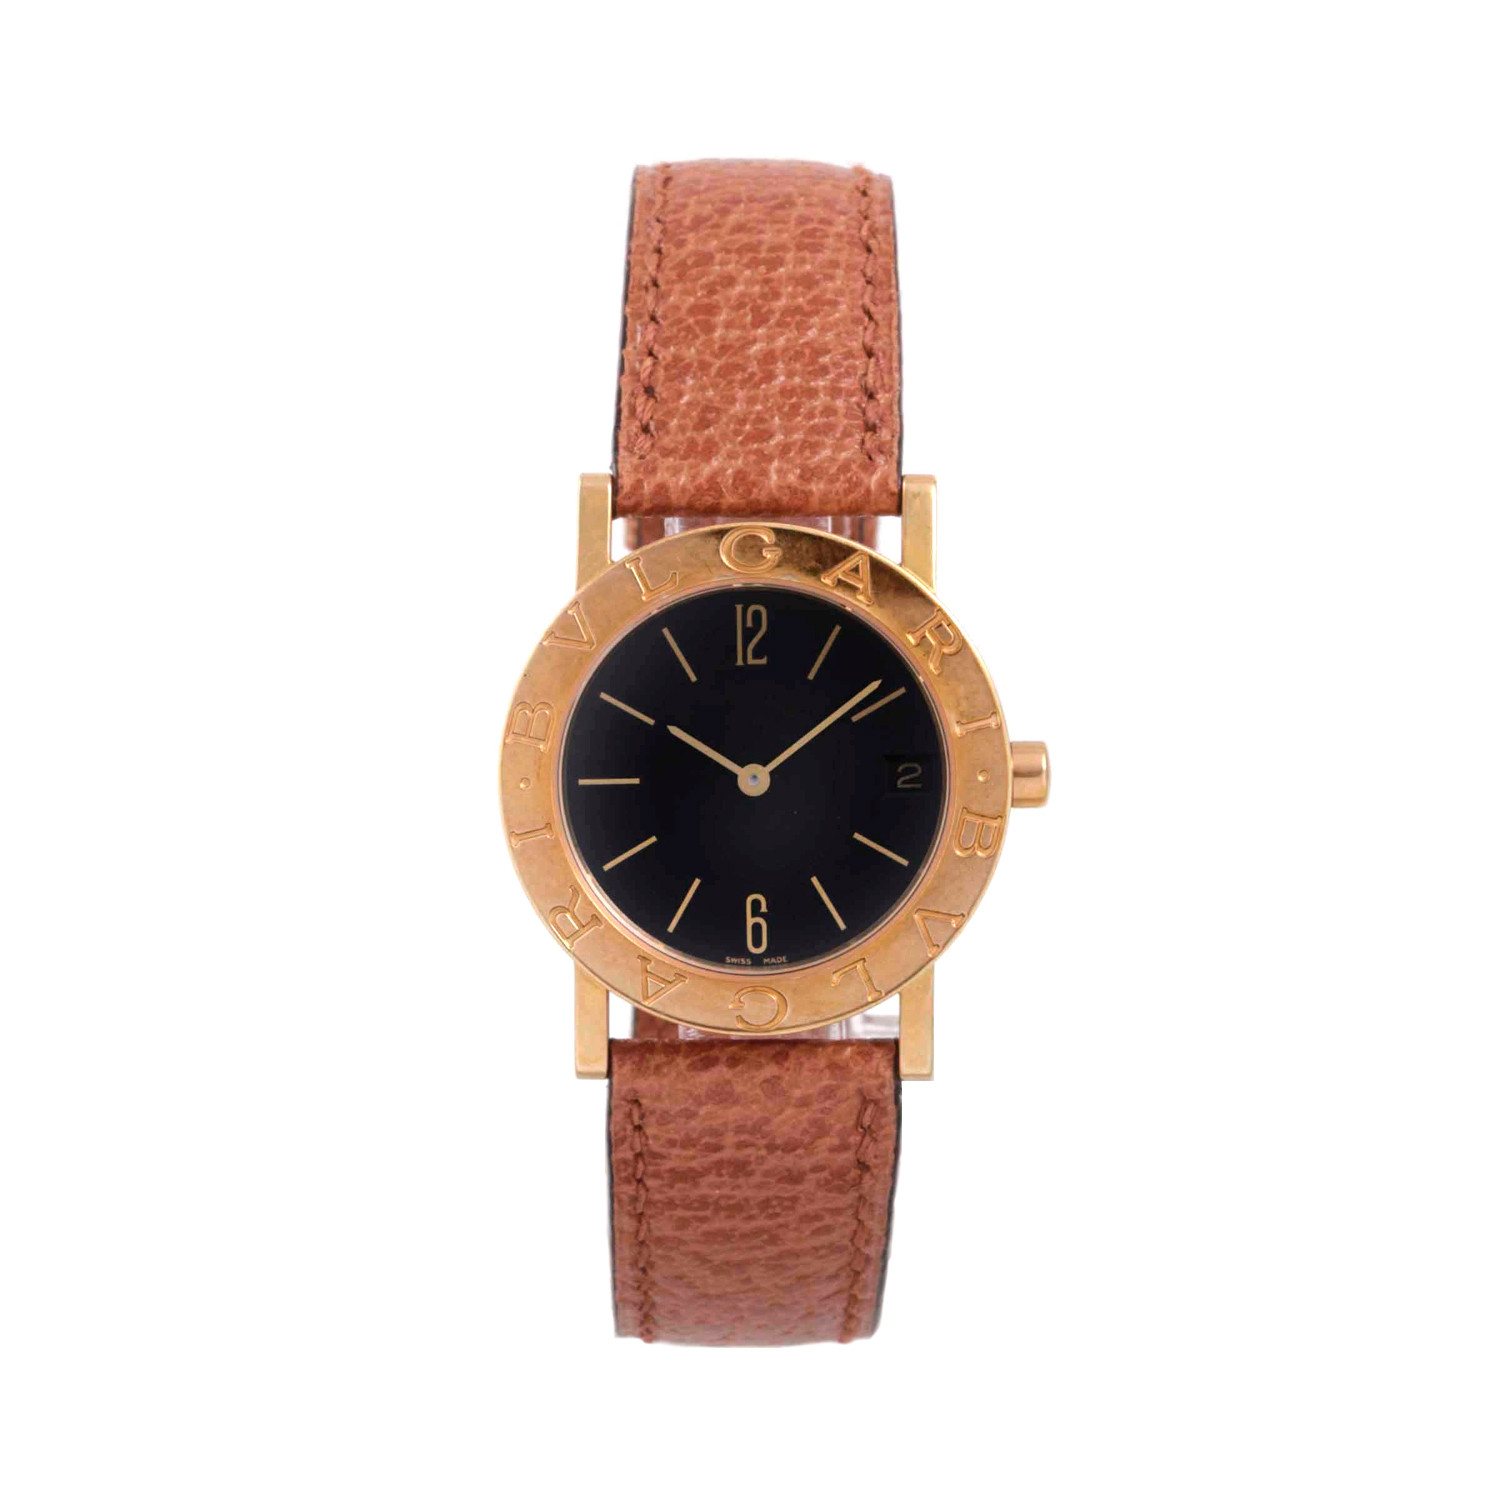 Bvlgari Yellow Gold Watch BB 23    Women s - Vintage Watches - Touch ... 25f87f4a2441e